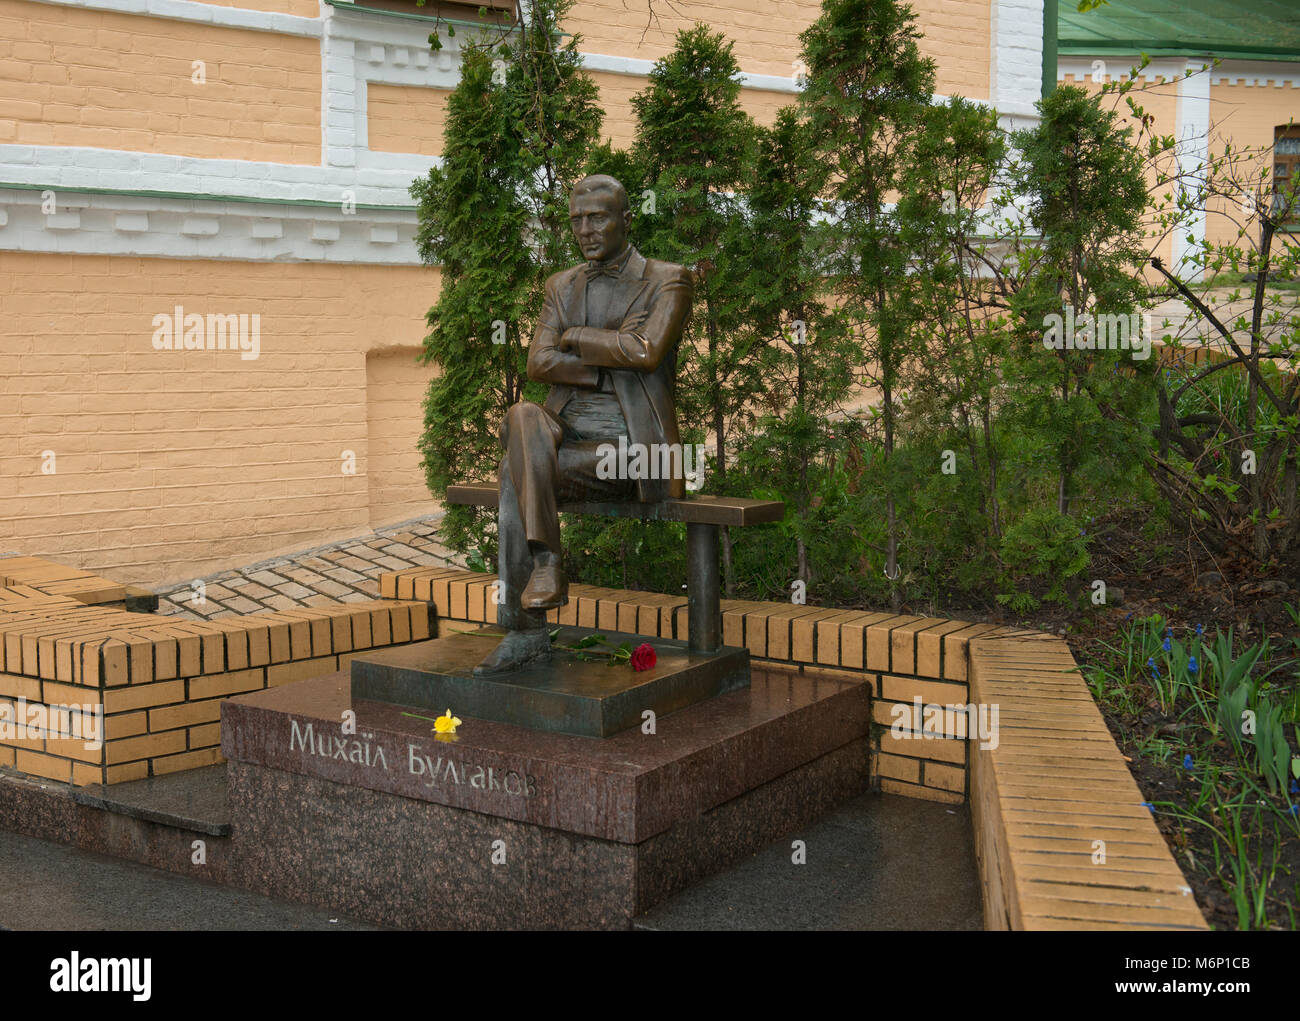 Commemorative sculpture at the house of Russian writer Mikhail Bulgakov in Andriyivskyy Descent in Kiev, Ukraine. - Stock Image